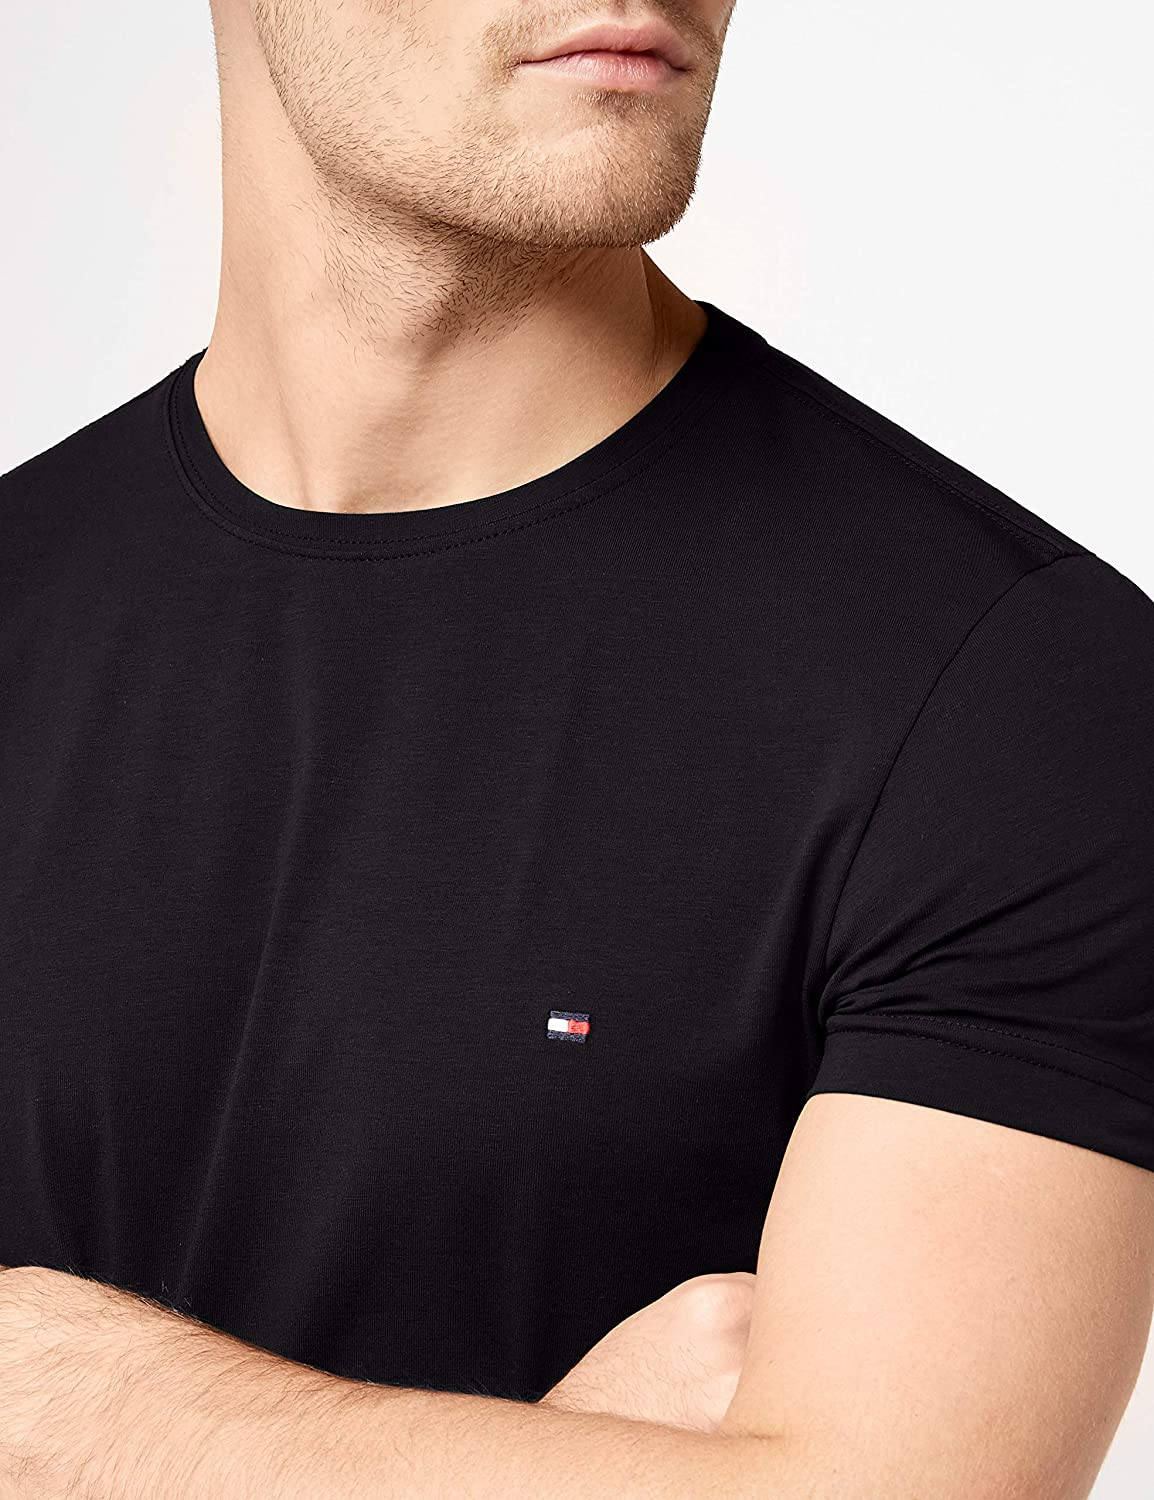 5f83c55c3e2bf Tommy Hilfiger Men s s Core Stretch Slim Cneck Tee T-Shirt White  Tommy  Hilfiger  Amazon.co.uk  Clothing